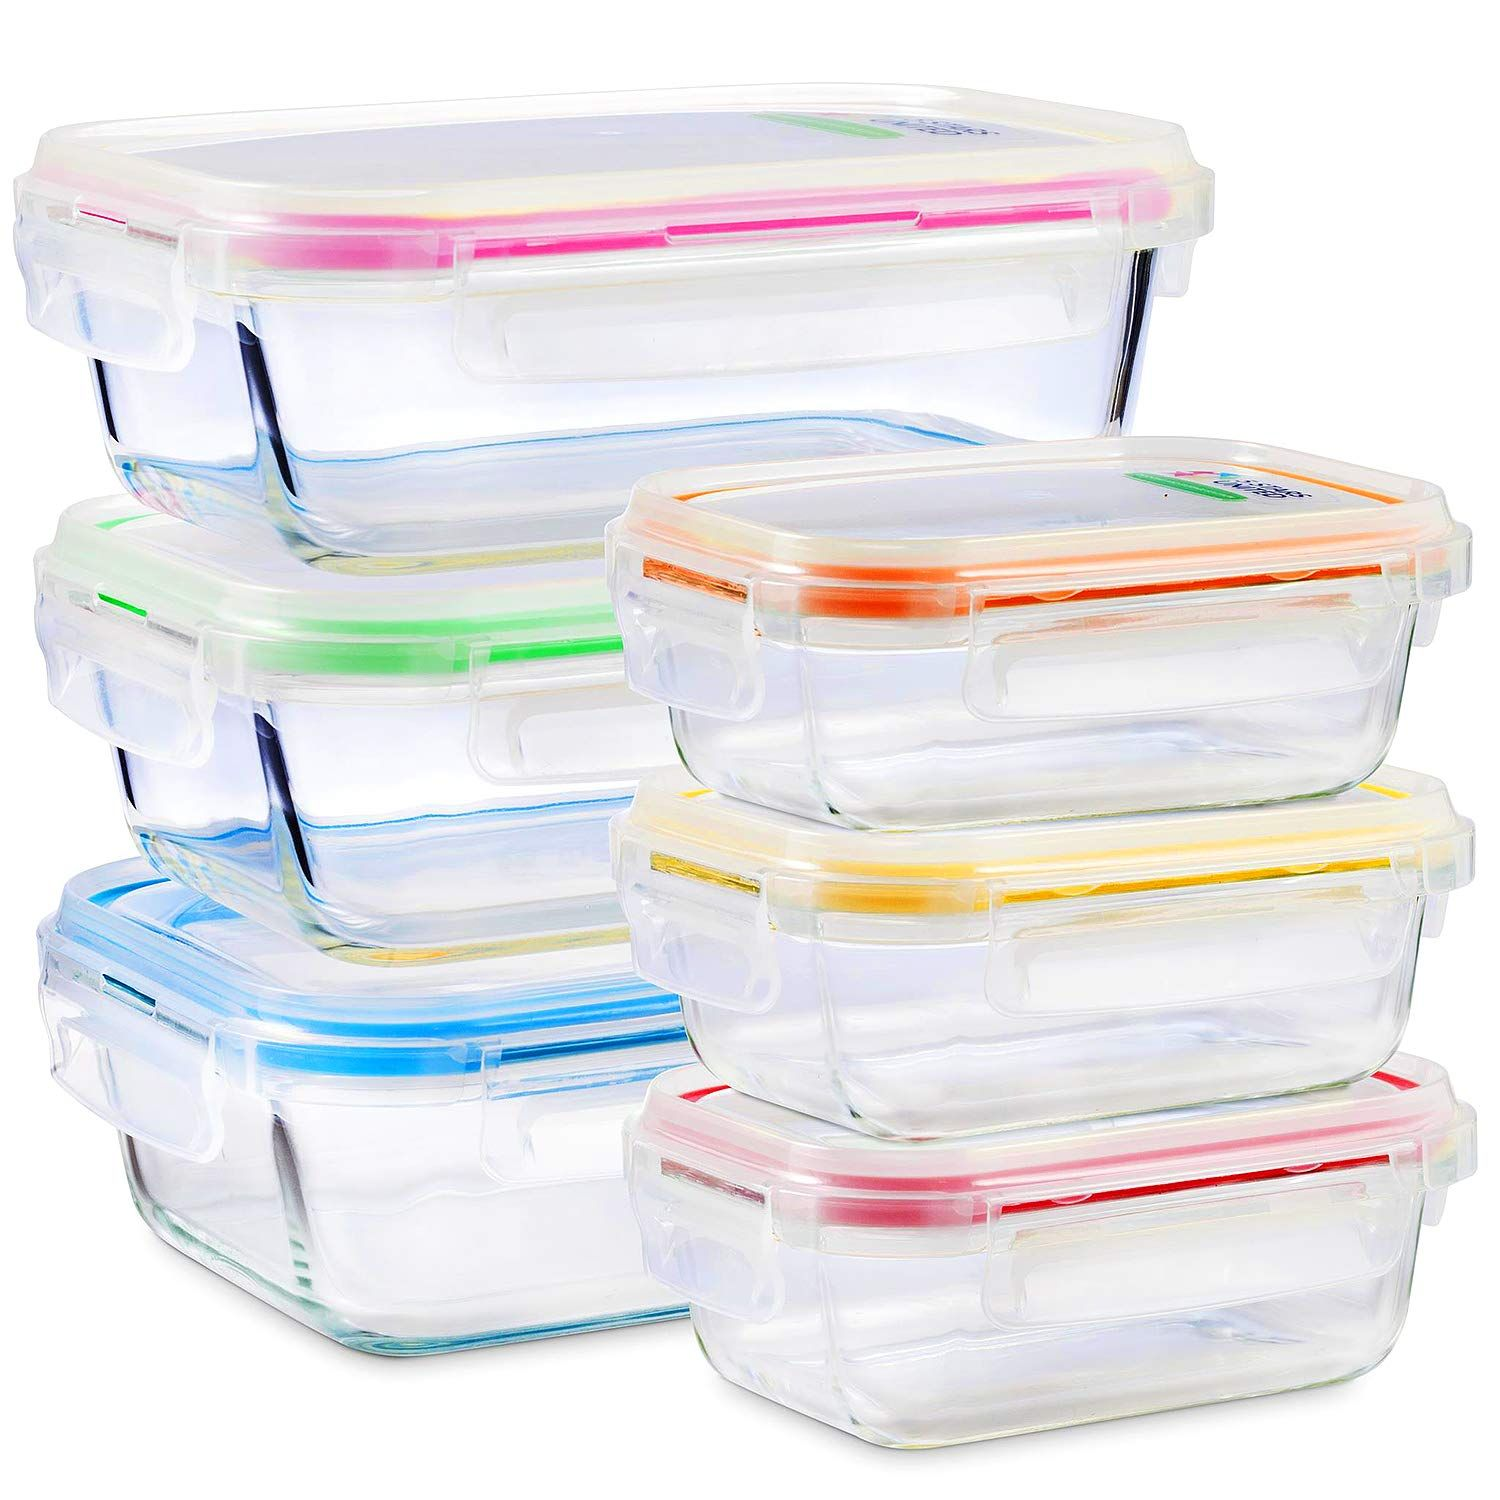 Glass Food Storage Containers With Lids 6 Pack 2 Sizes 35 Oz 12 Oz Meal Prep L Glass Food Storage Containers Glass Food Storage Food Storage Containers